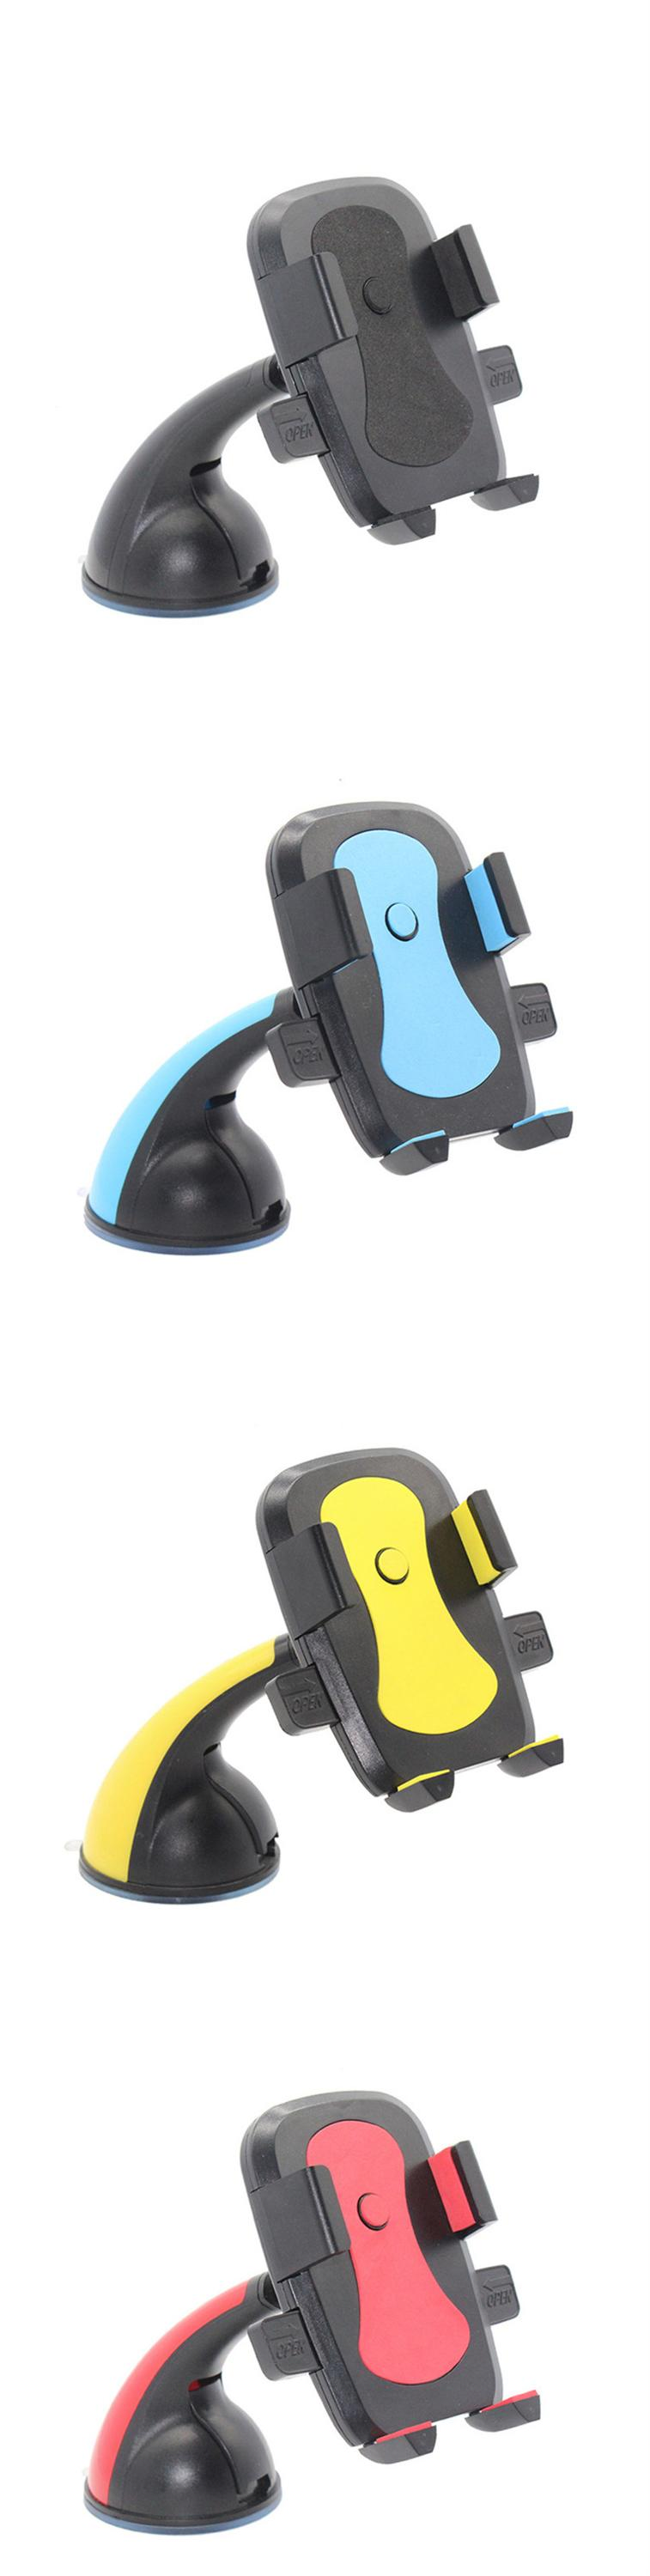 Smart universal 360 mobile phone holder car magnetic car cell phone holder